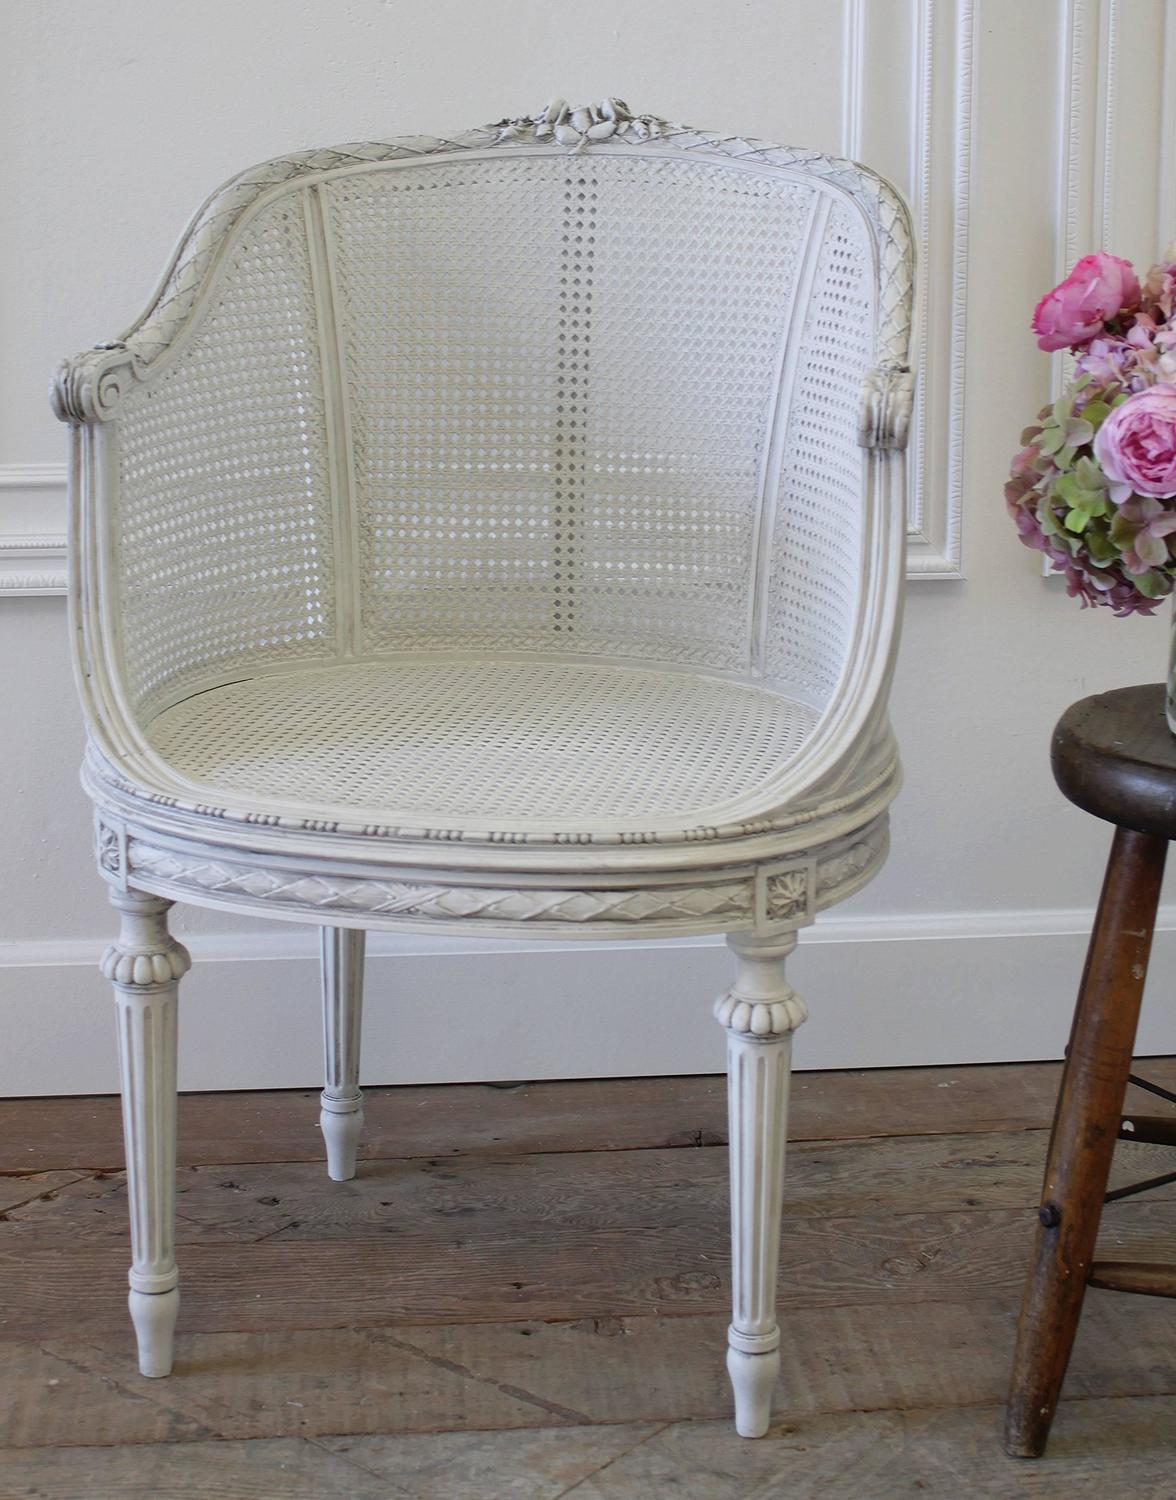 cane barrel chair high buy baby antique louis xvi french painted with